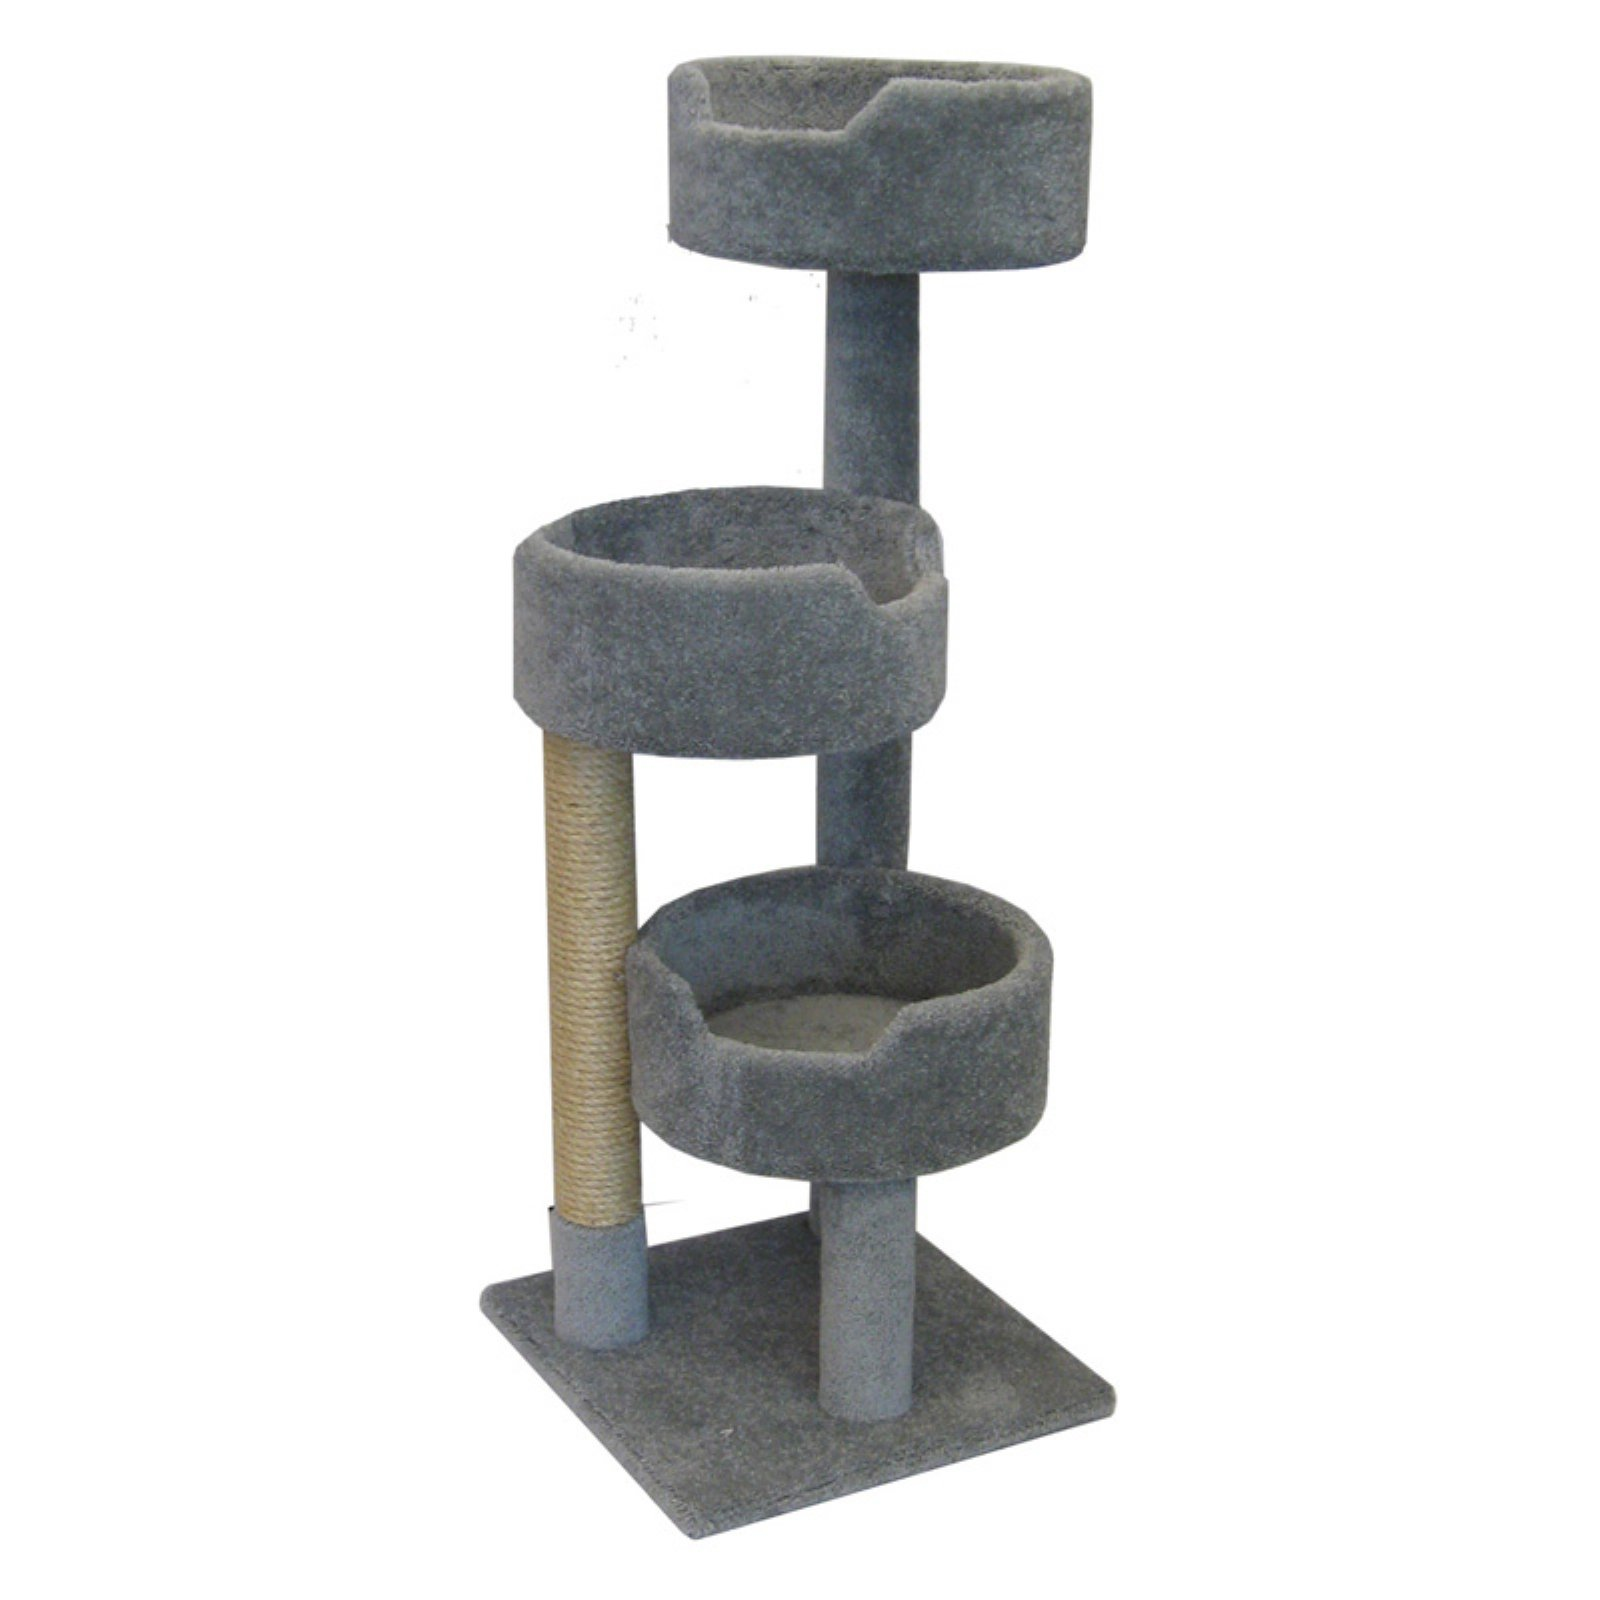 New Cat Condos Deluxe Kitty Pad 52 in. Cat Tree by New Cat Condos